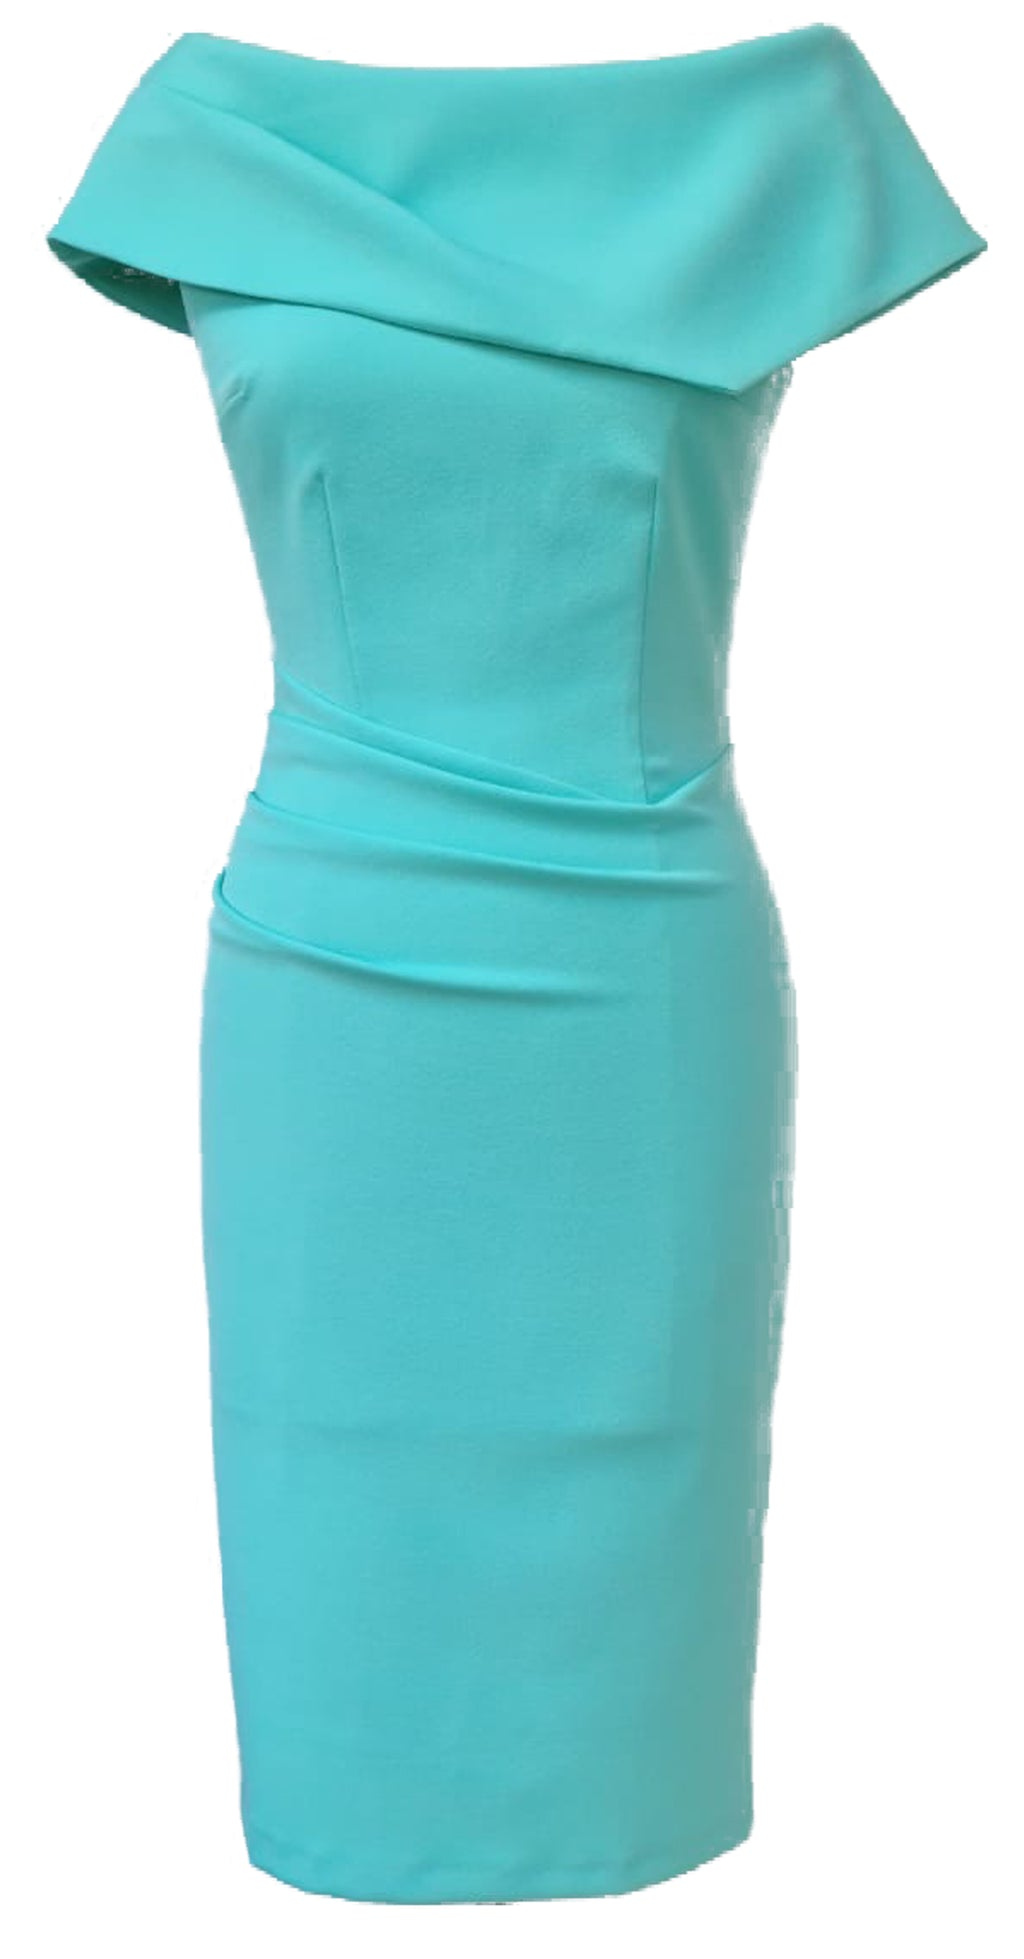 Olympia Dress DRC233 Mint Crepe